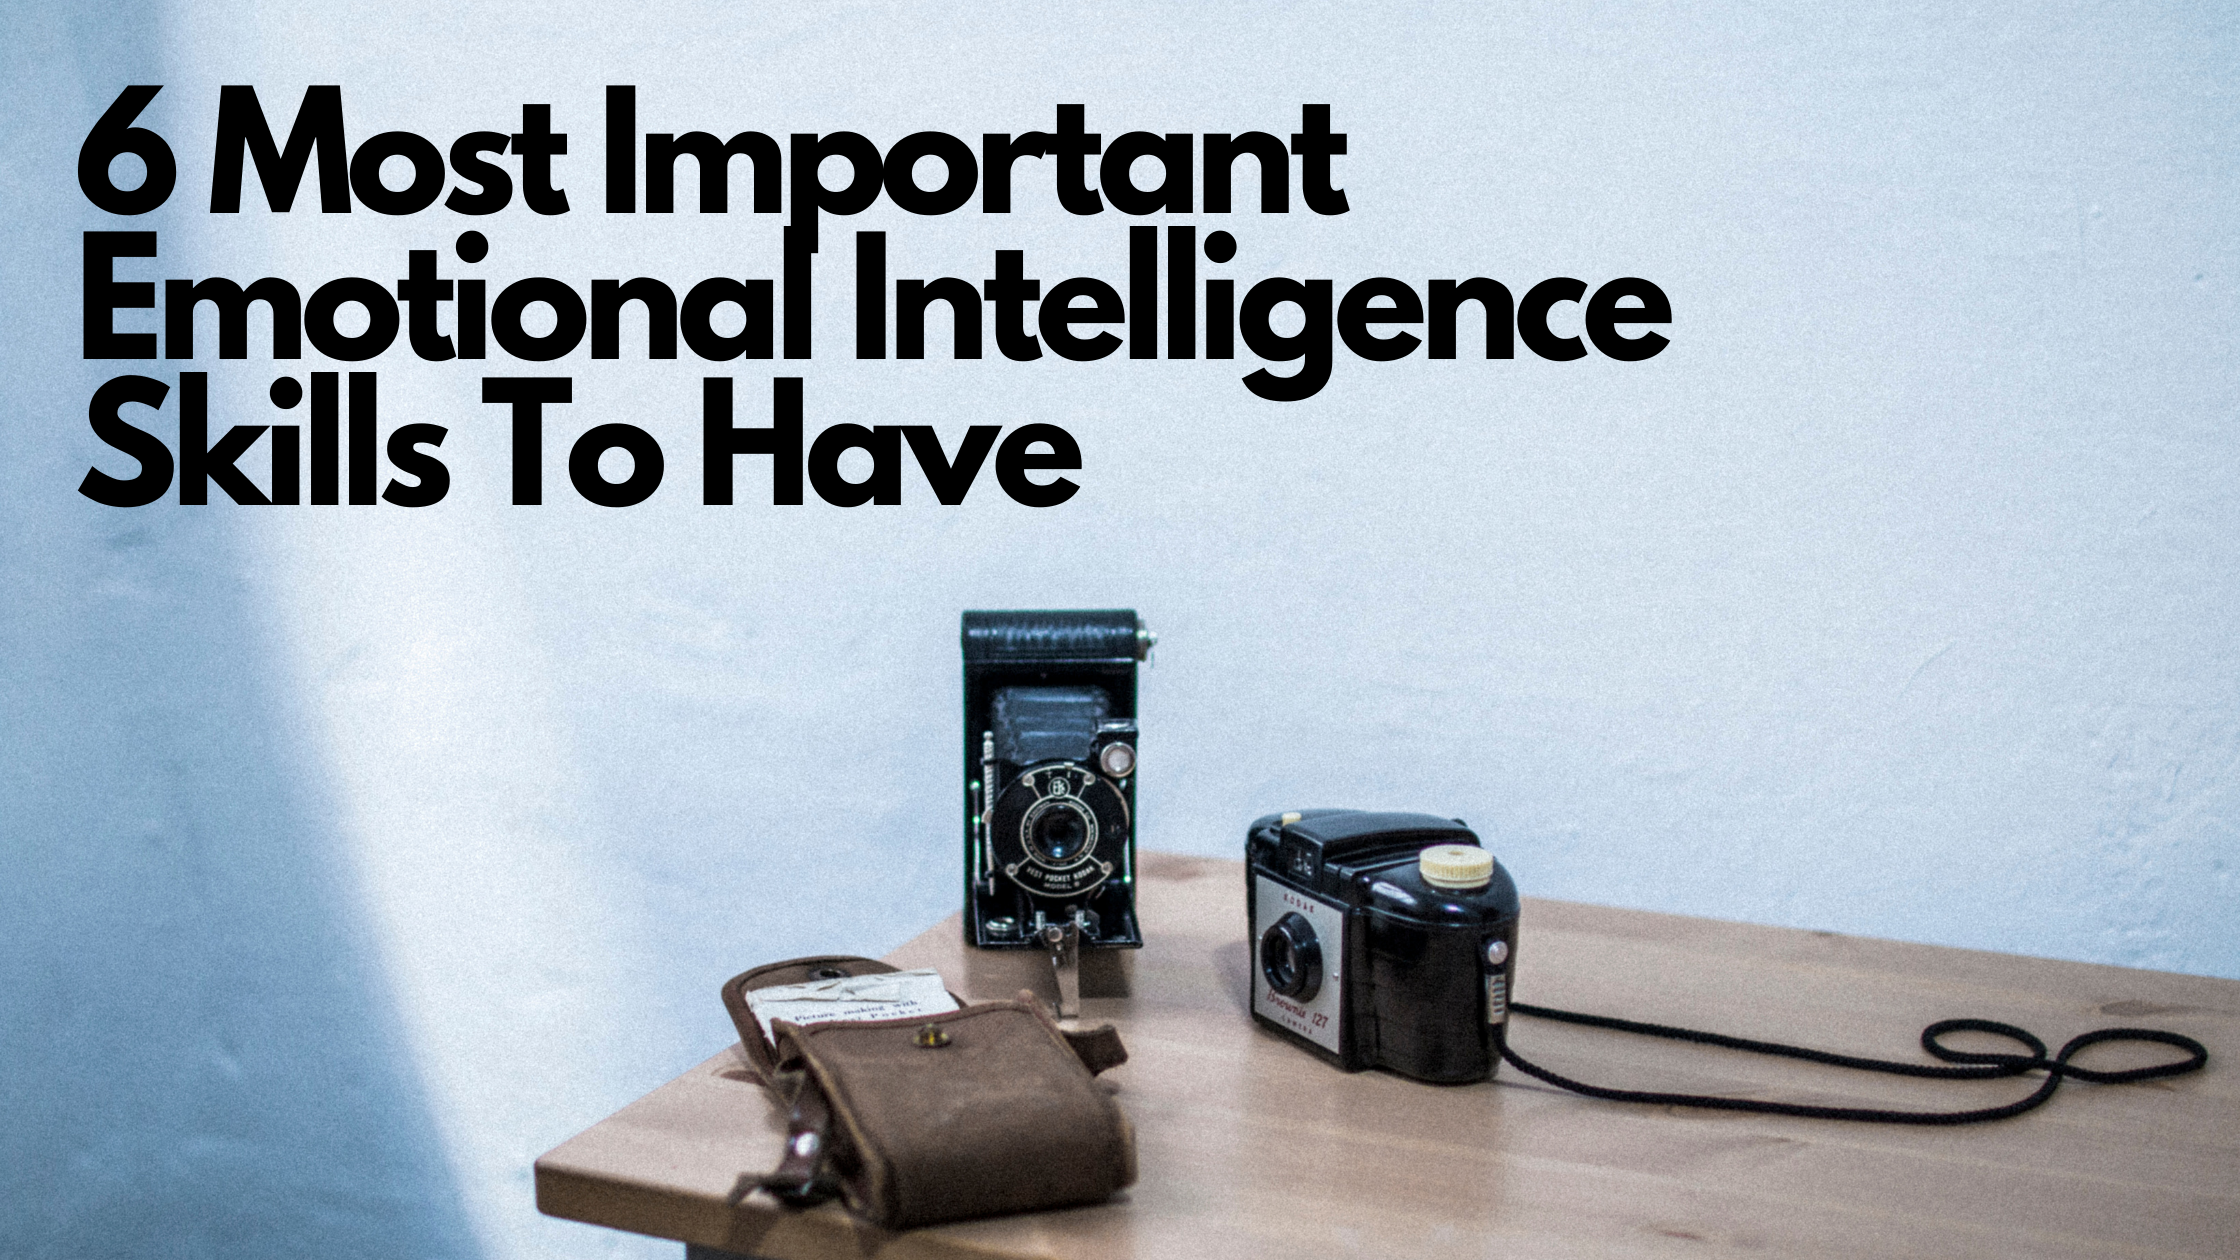 6 Most Important Emotional Intelligence Skills To Have